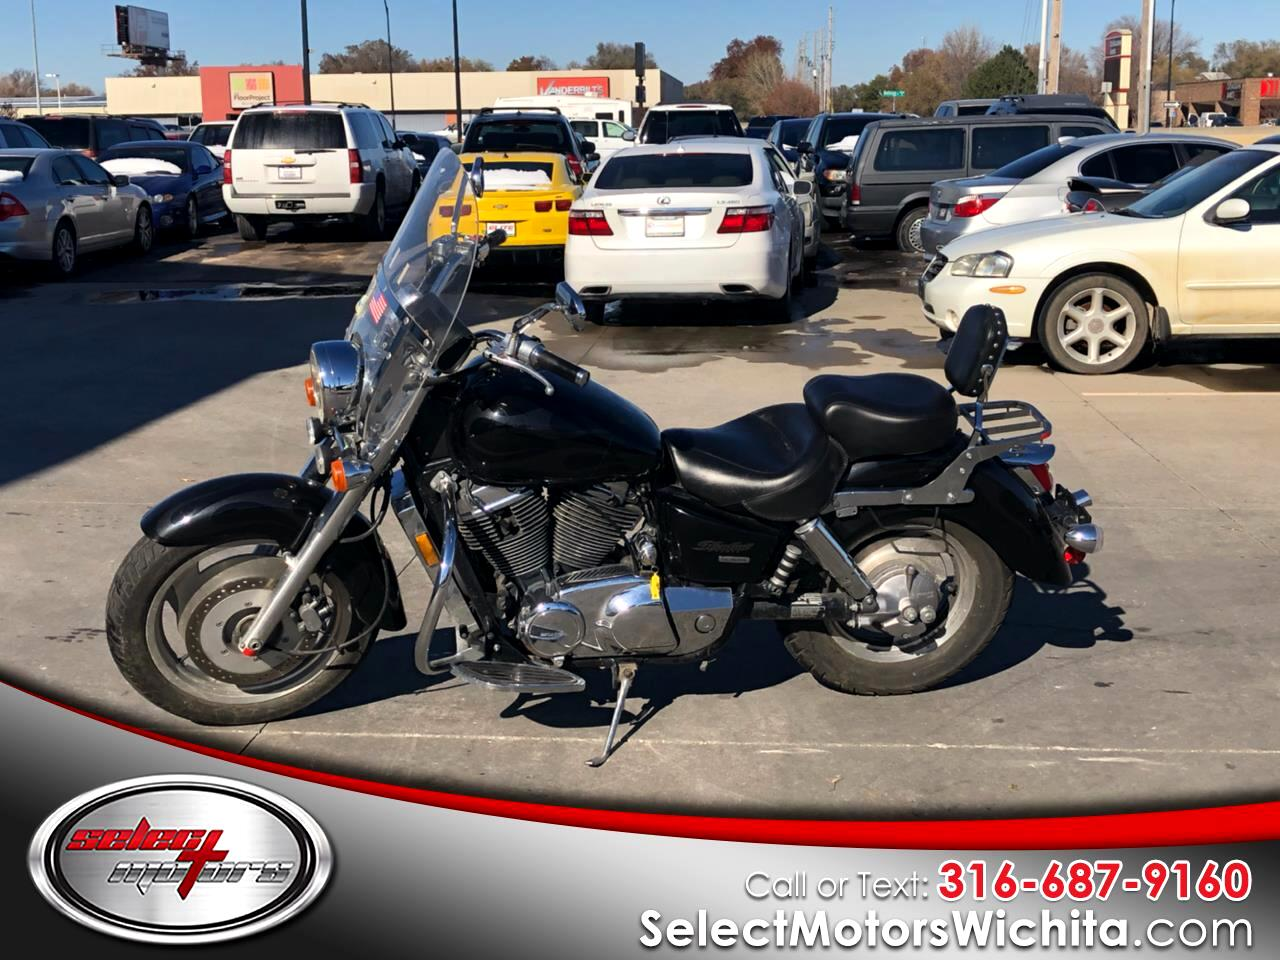 2004 Honda Shadow VT750